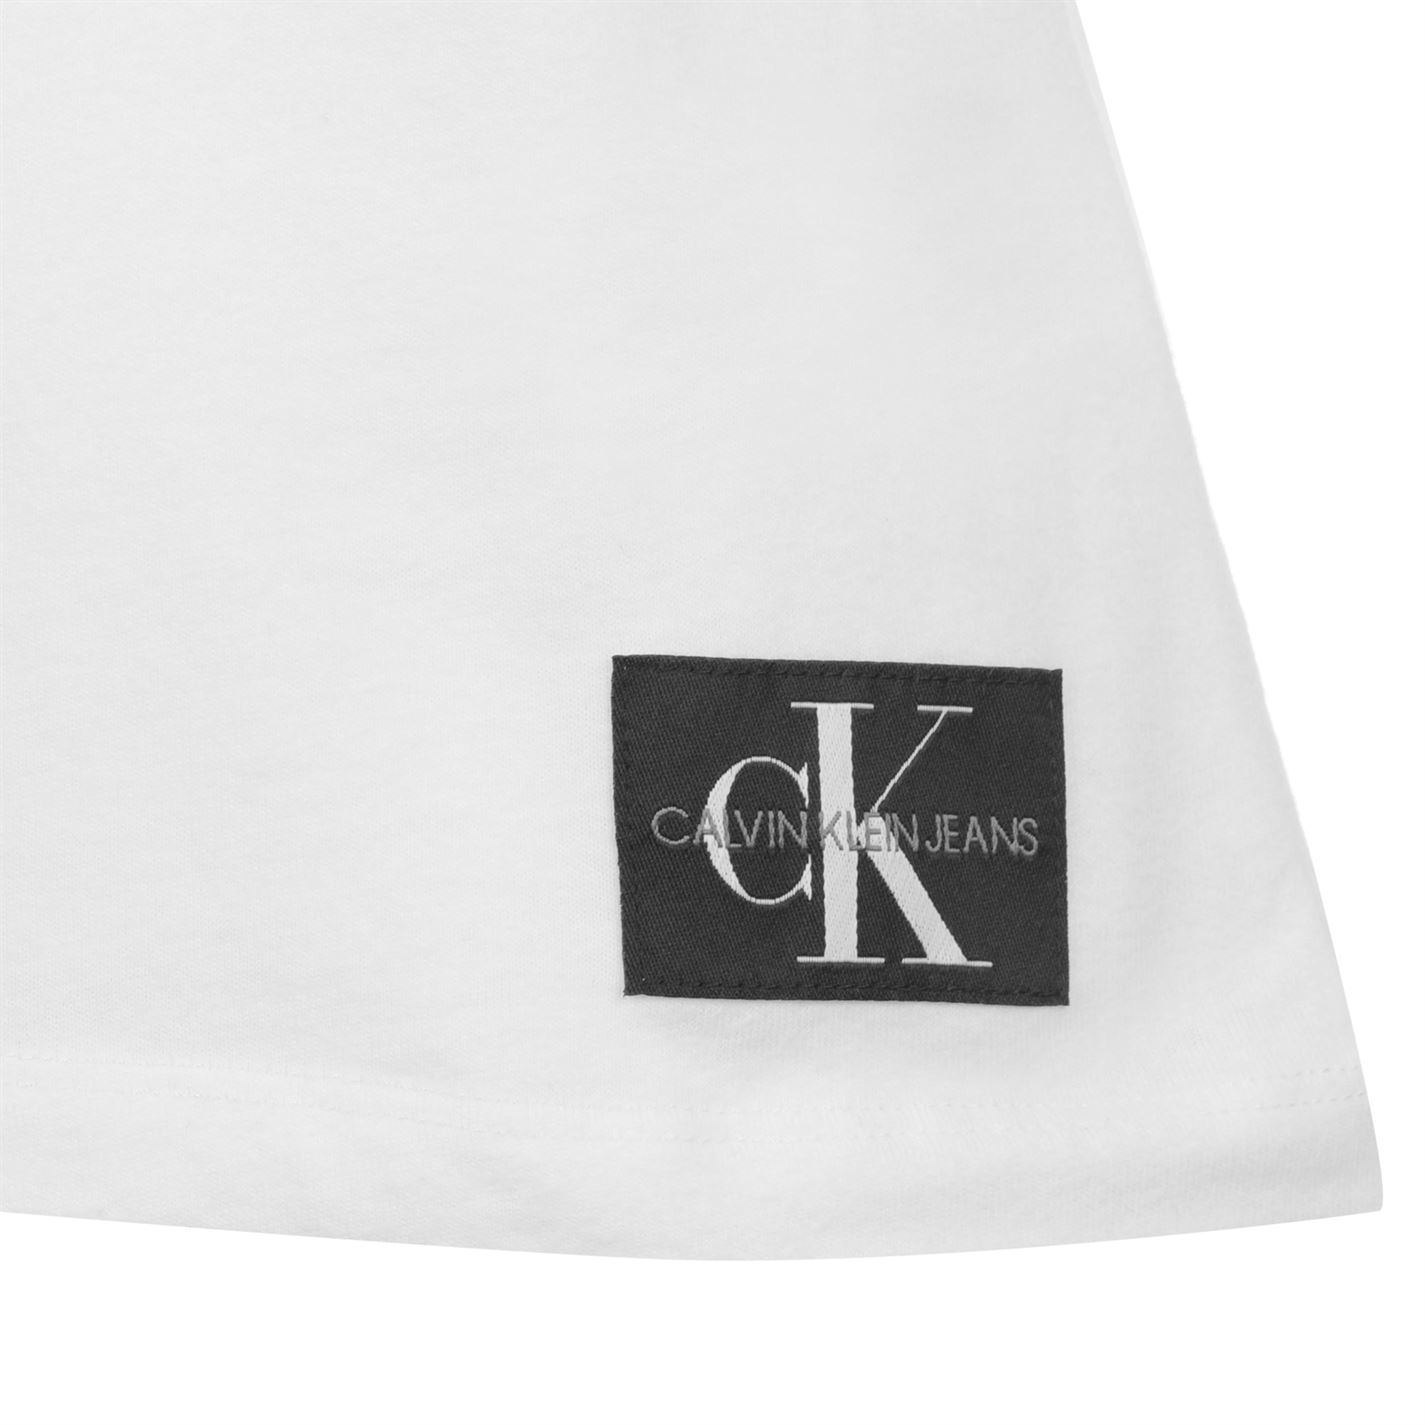 Womens-Calvin-Klein-Core-Slim-T-Shirt-Crew-Neck-Short-Sleeve-New thumbnail 7